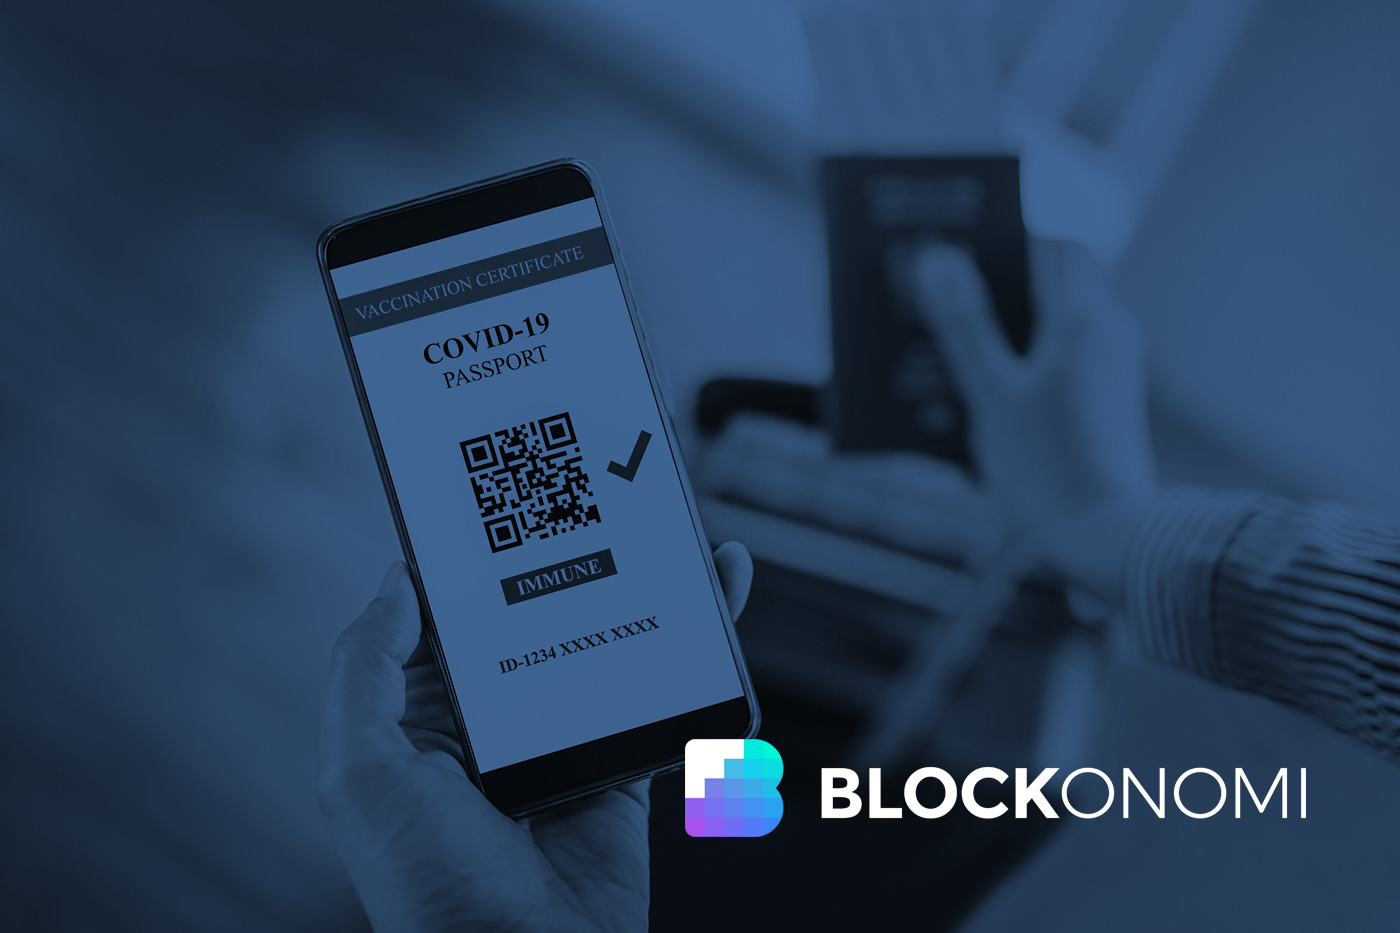 New York to Accelerate Business Reopenings with Blockchain-Based COVID19 Passport thumbnail